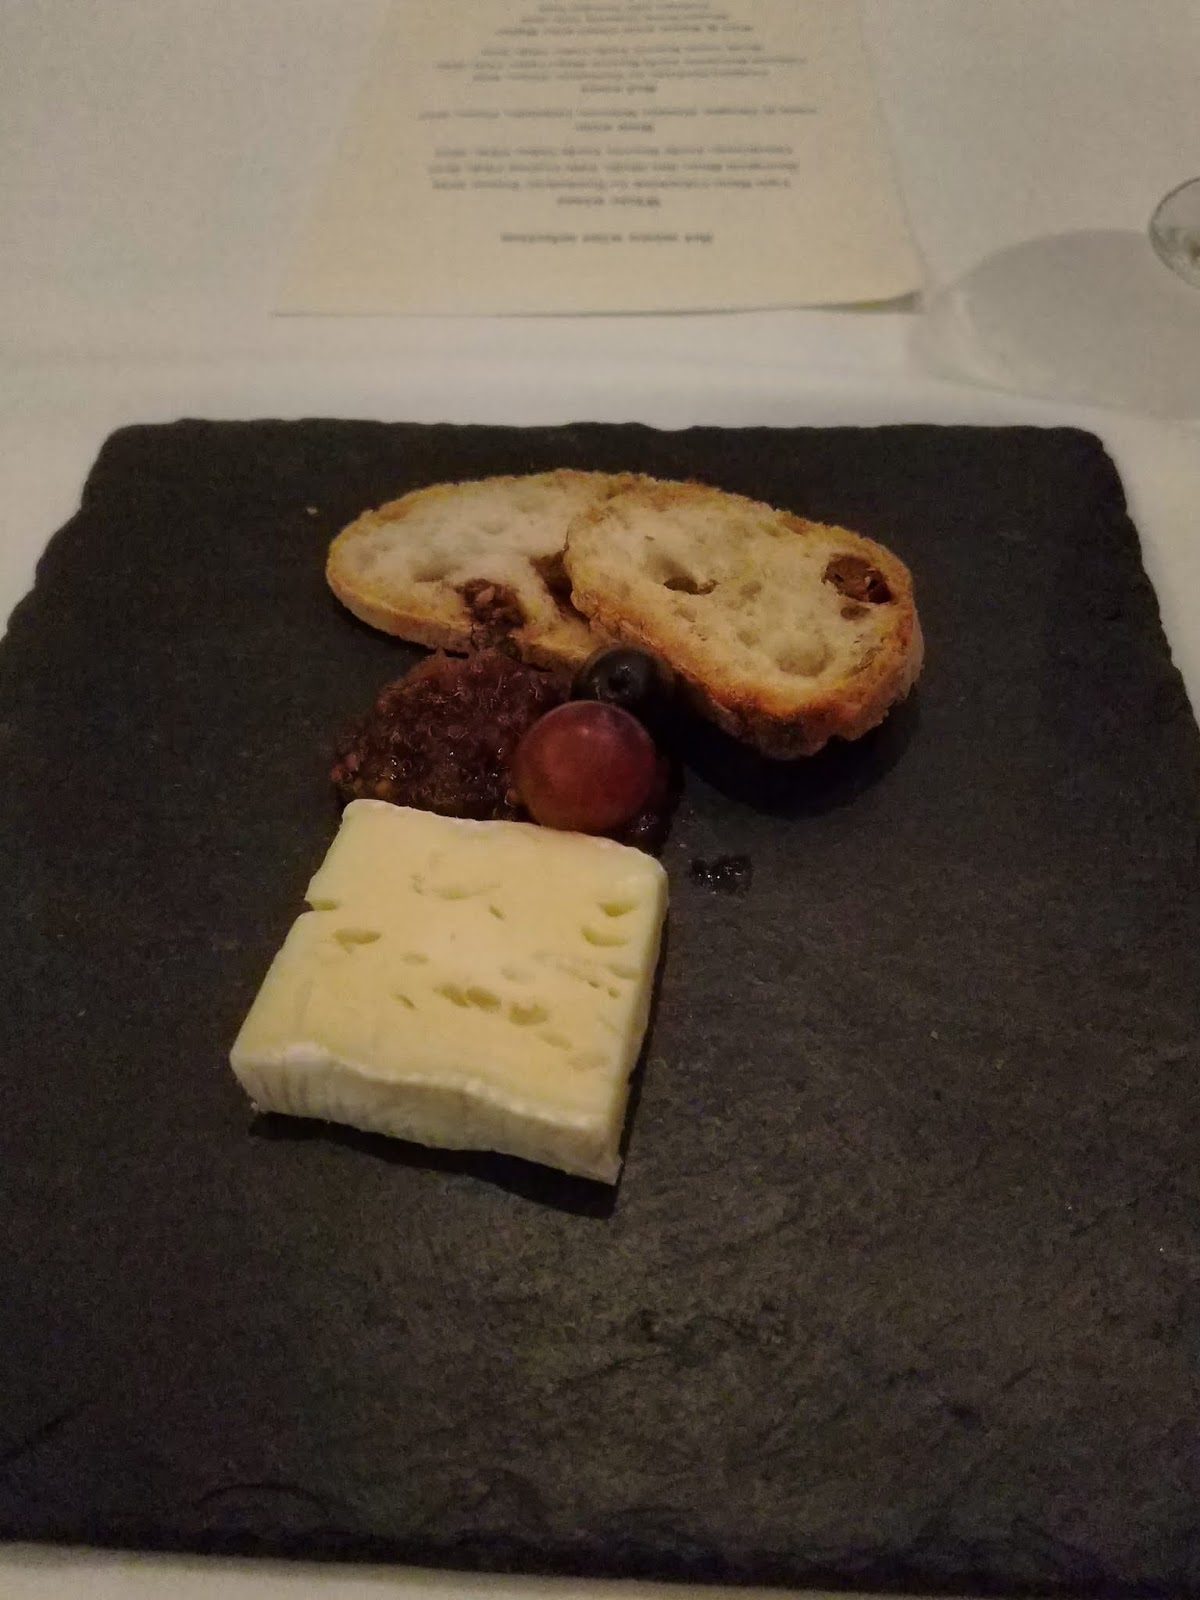 Baron Bigod, chutney & raisin bread at Galvin at Windows